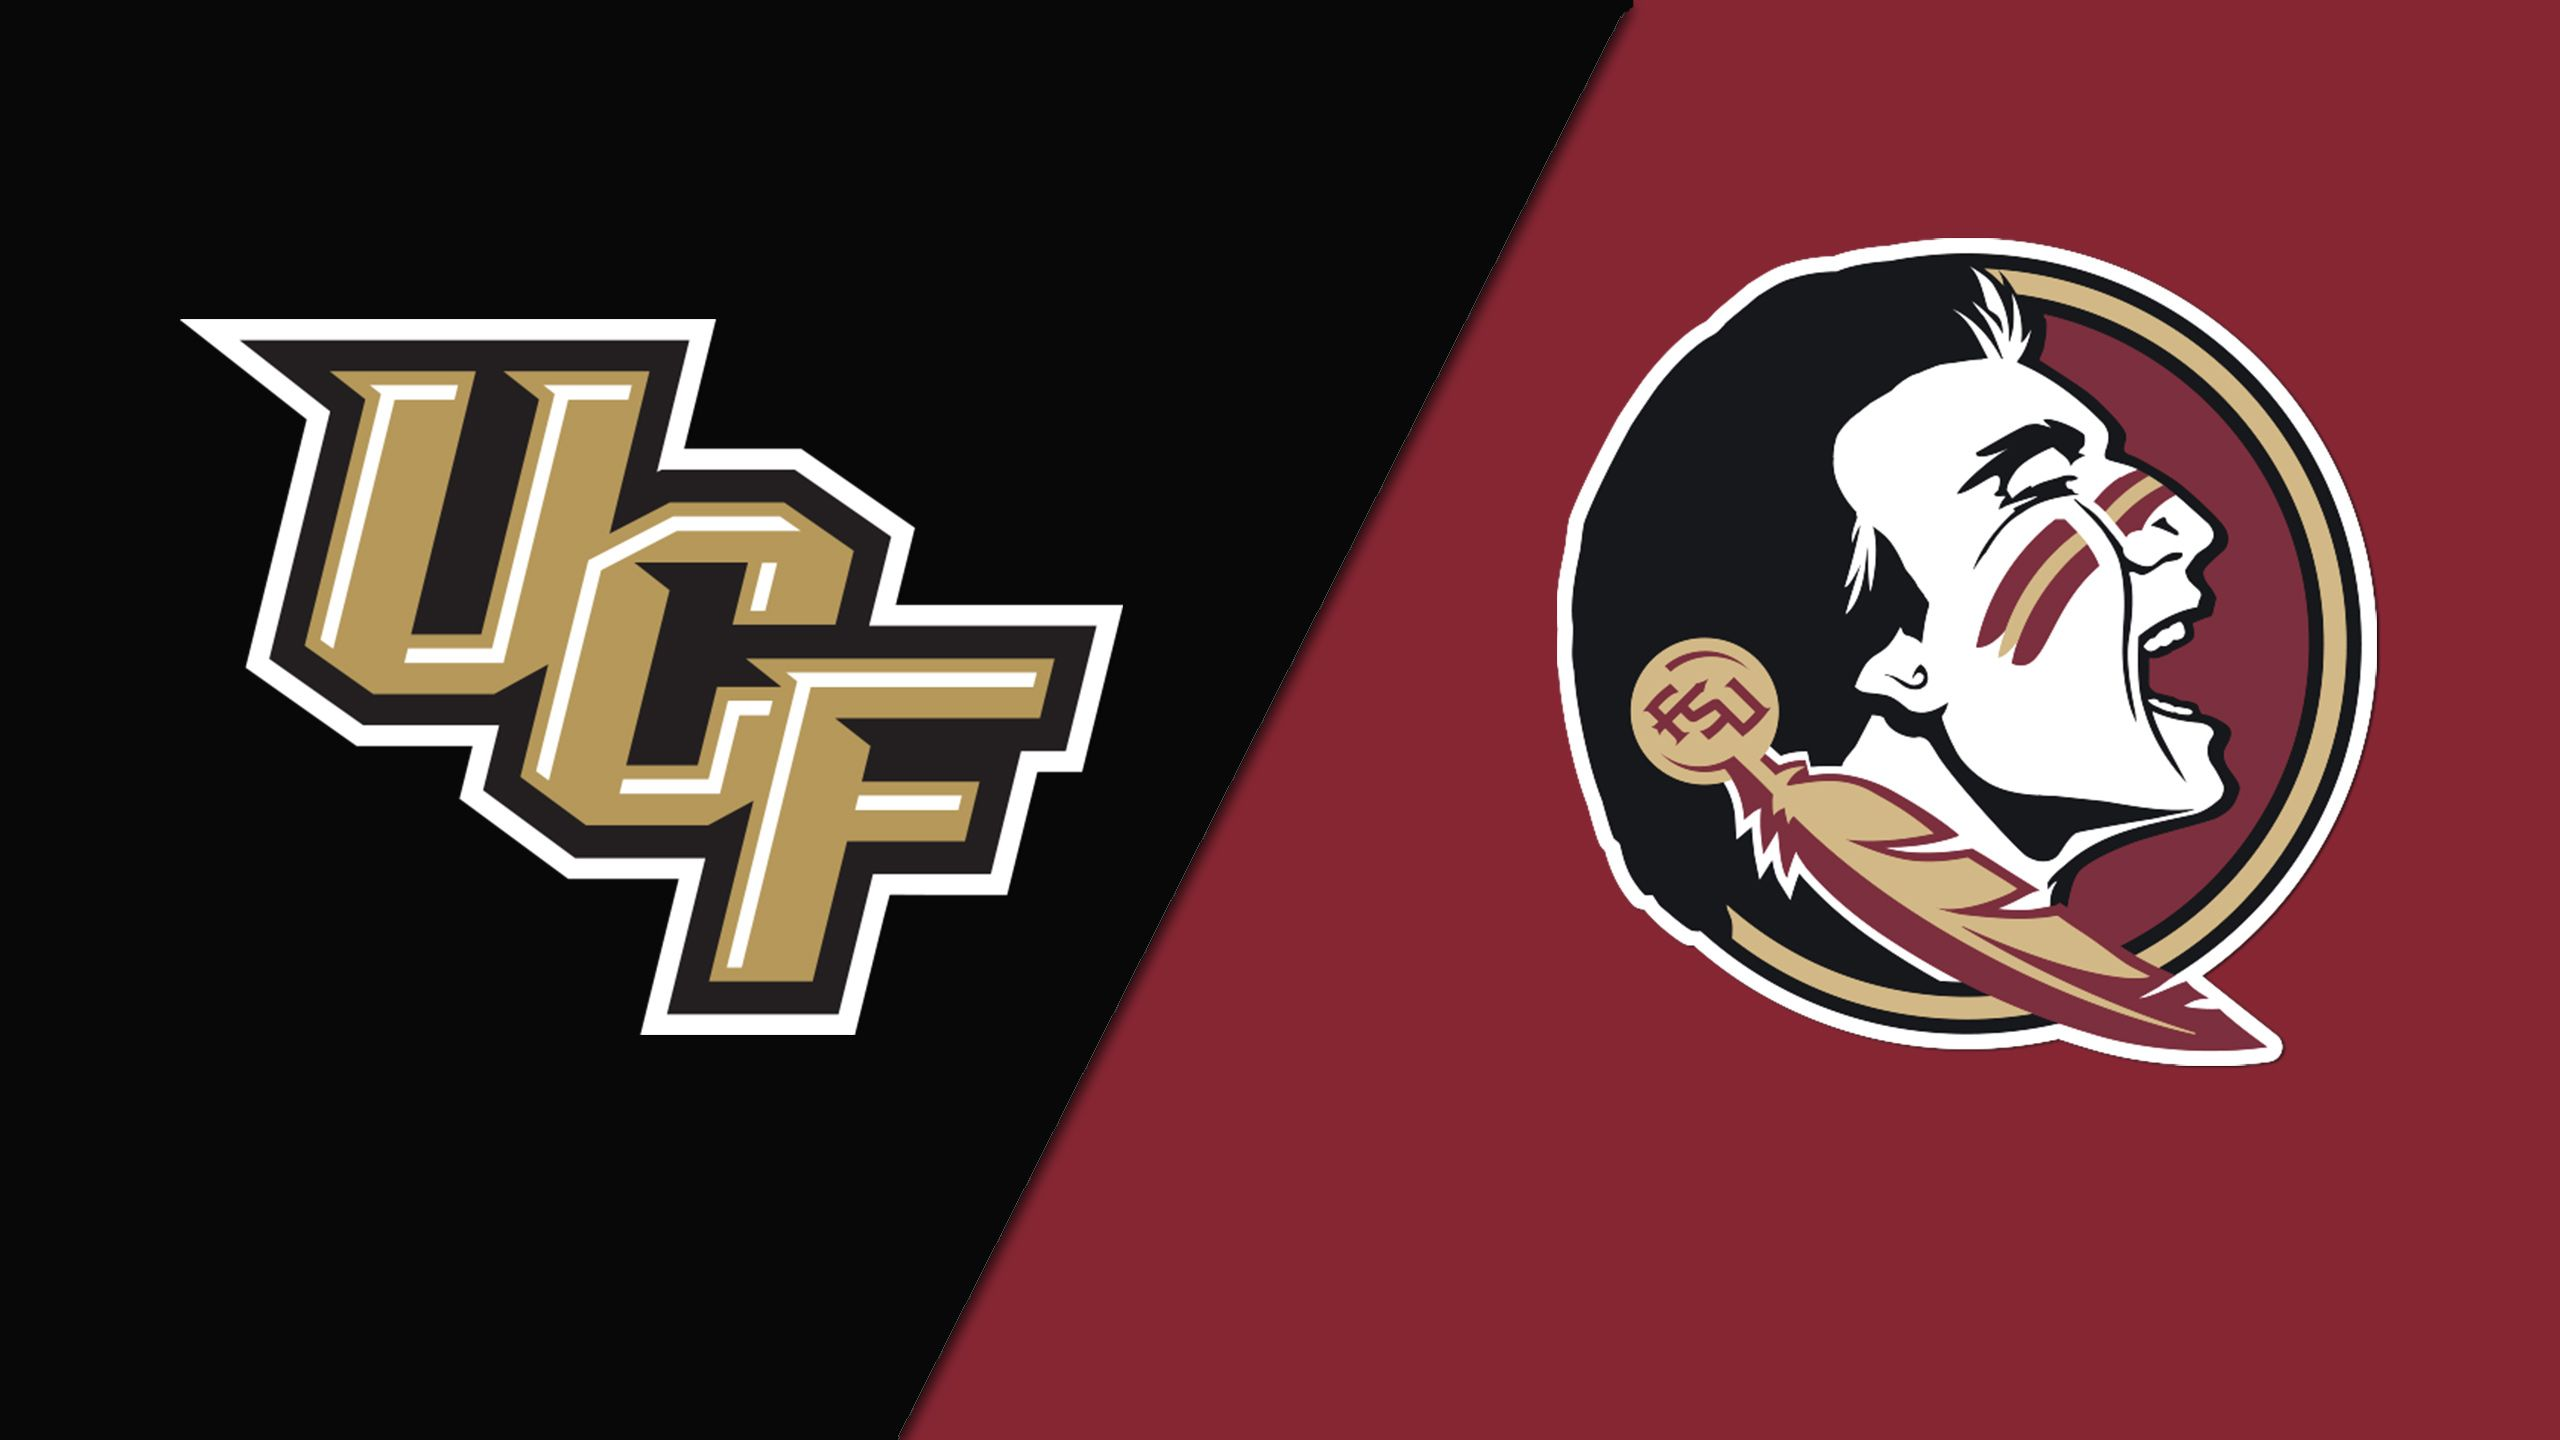 #21 UCF vs. #8 Florida State (Baseball)